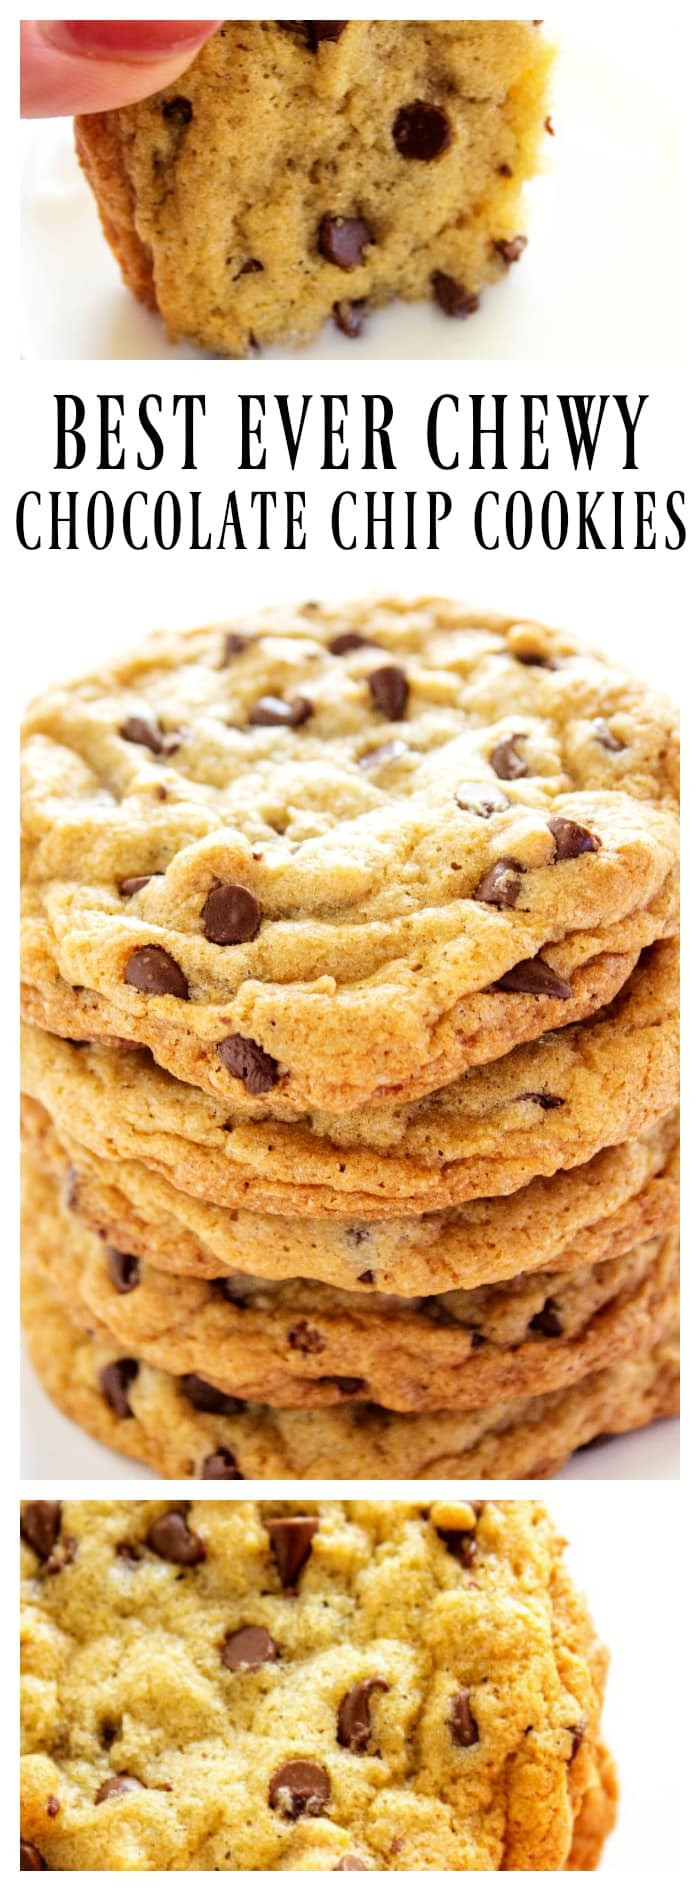 Best Ever Chocolate Chip Cookies  Best Ever Chewy Chocolate Chip Cookies A Dash of Sanity